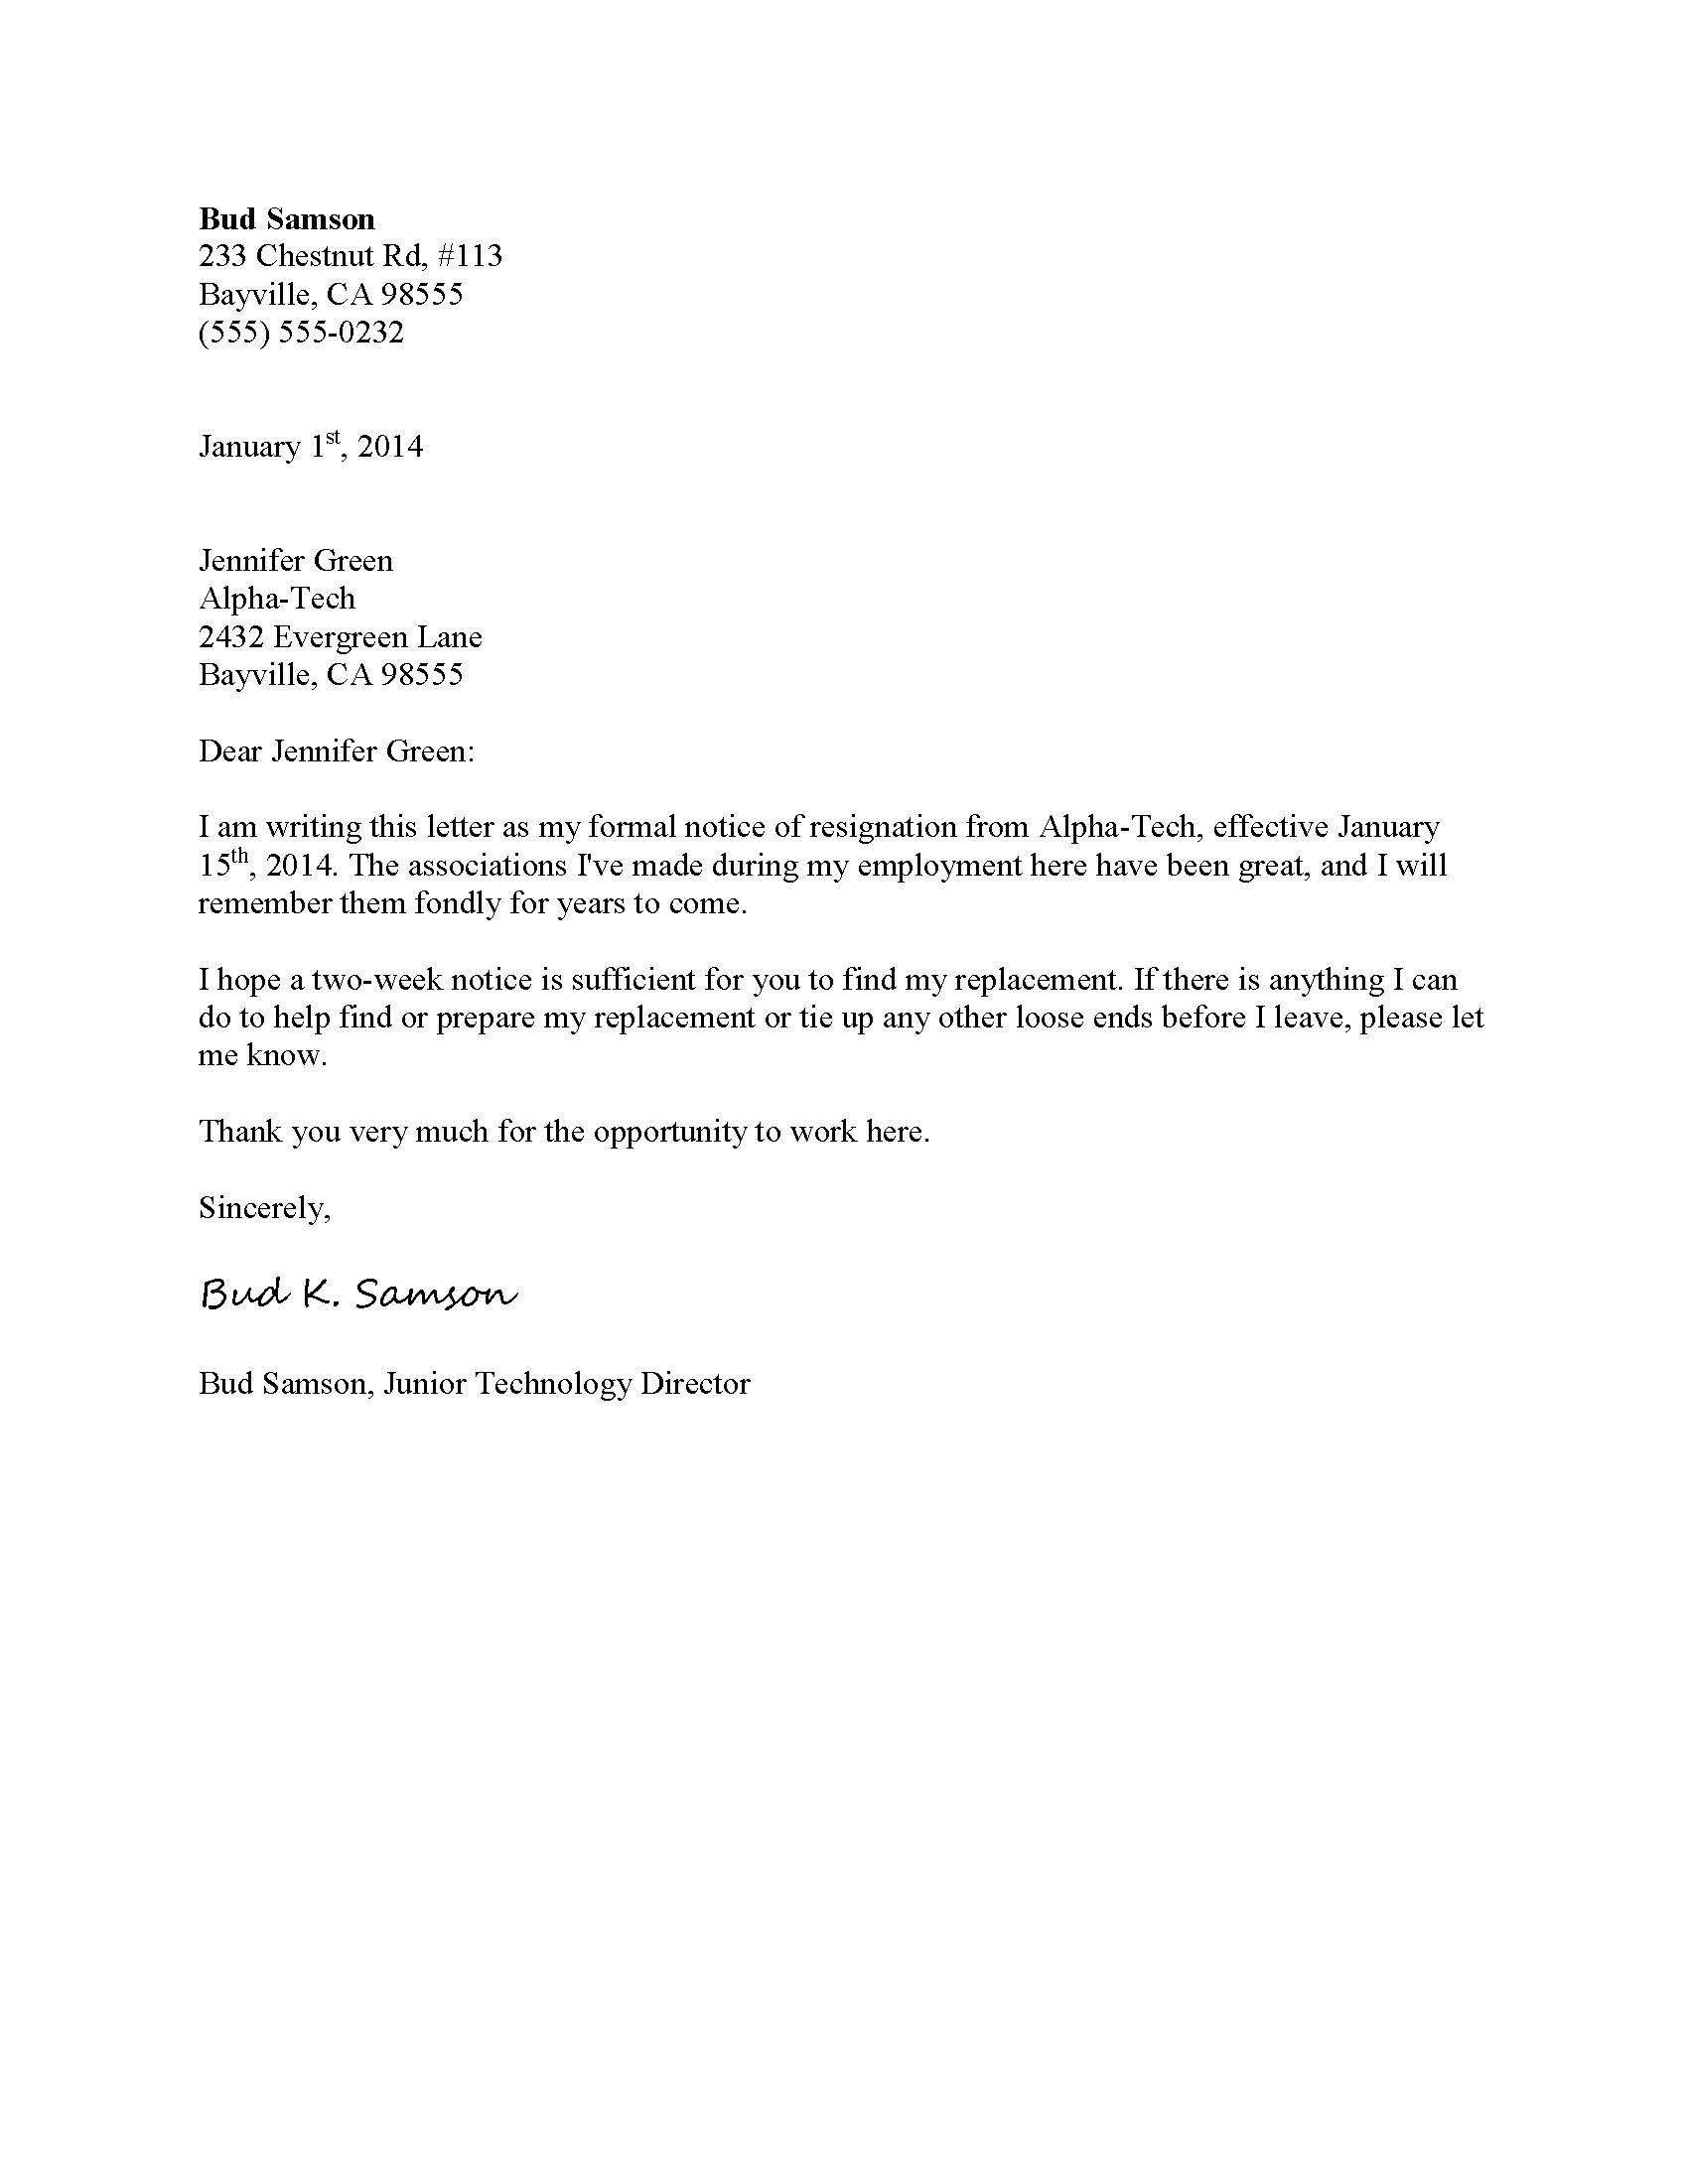 sample formal resignation letter template for quitting your job ...